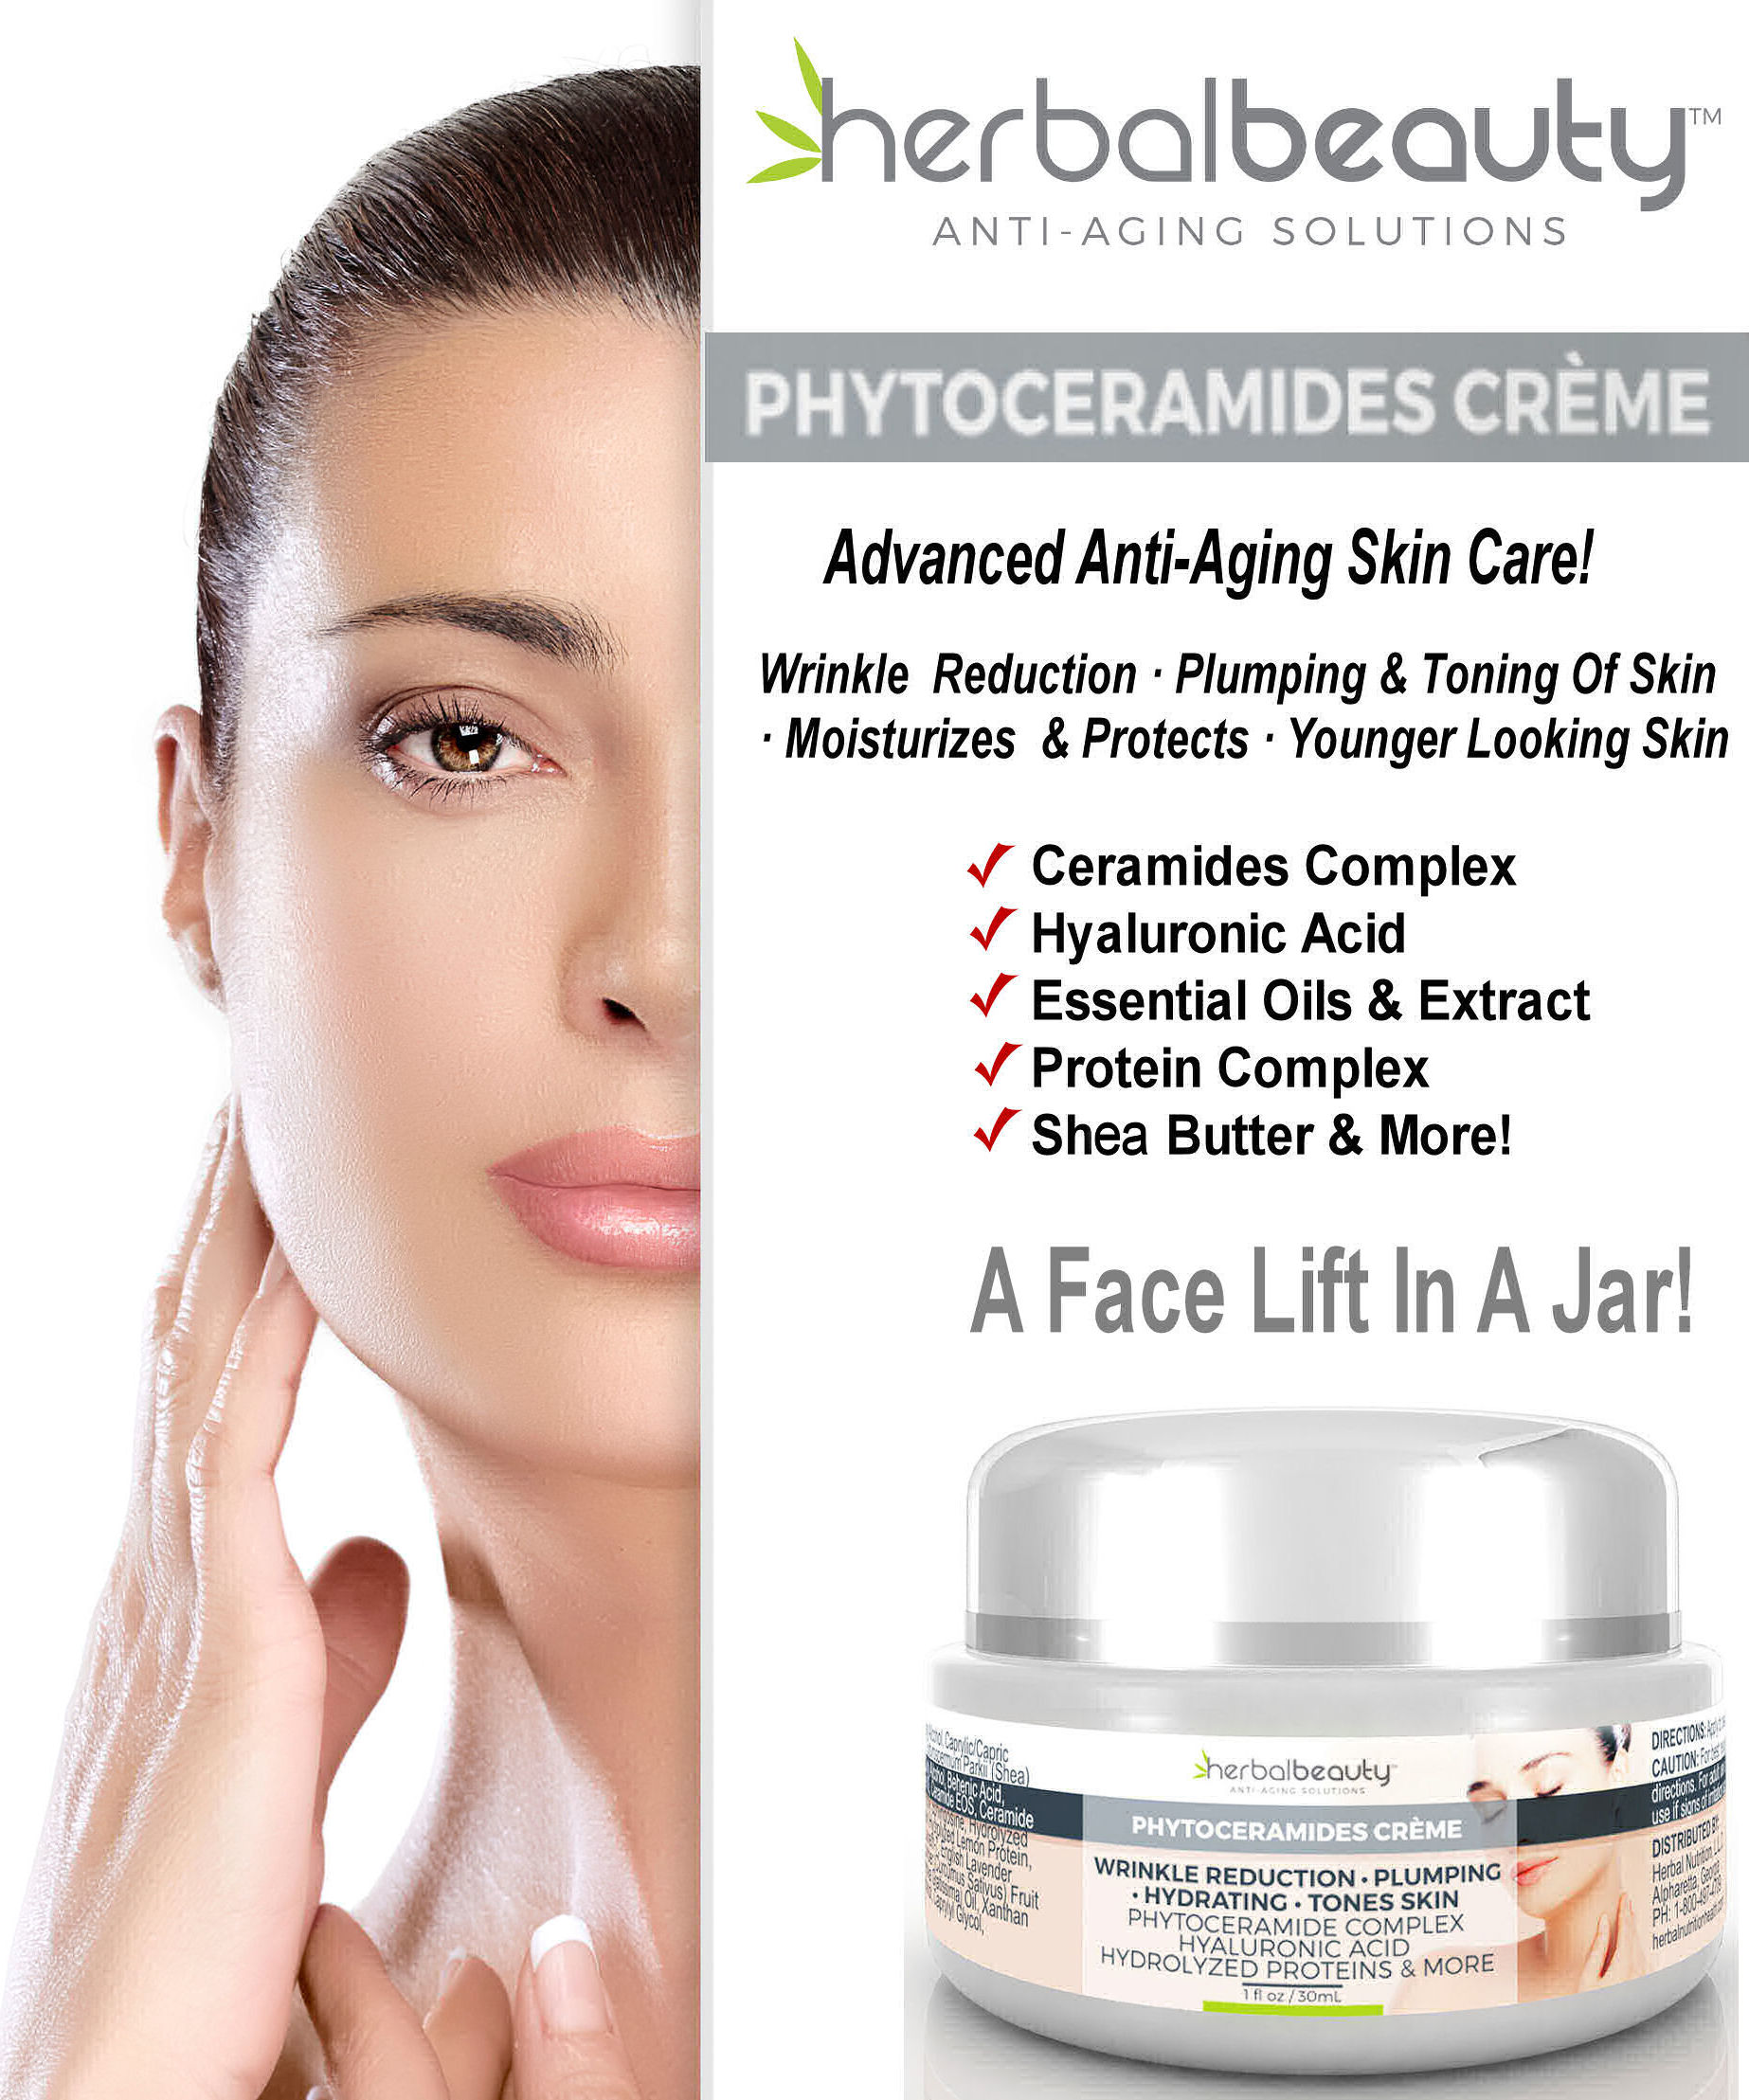 Phytoceramides Cream Benefits